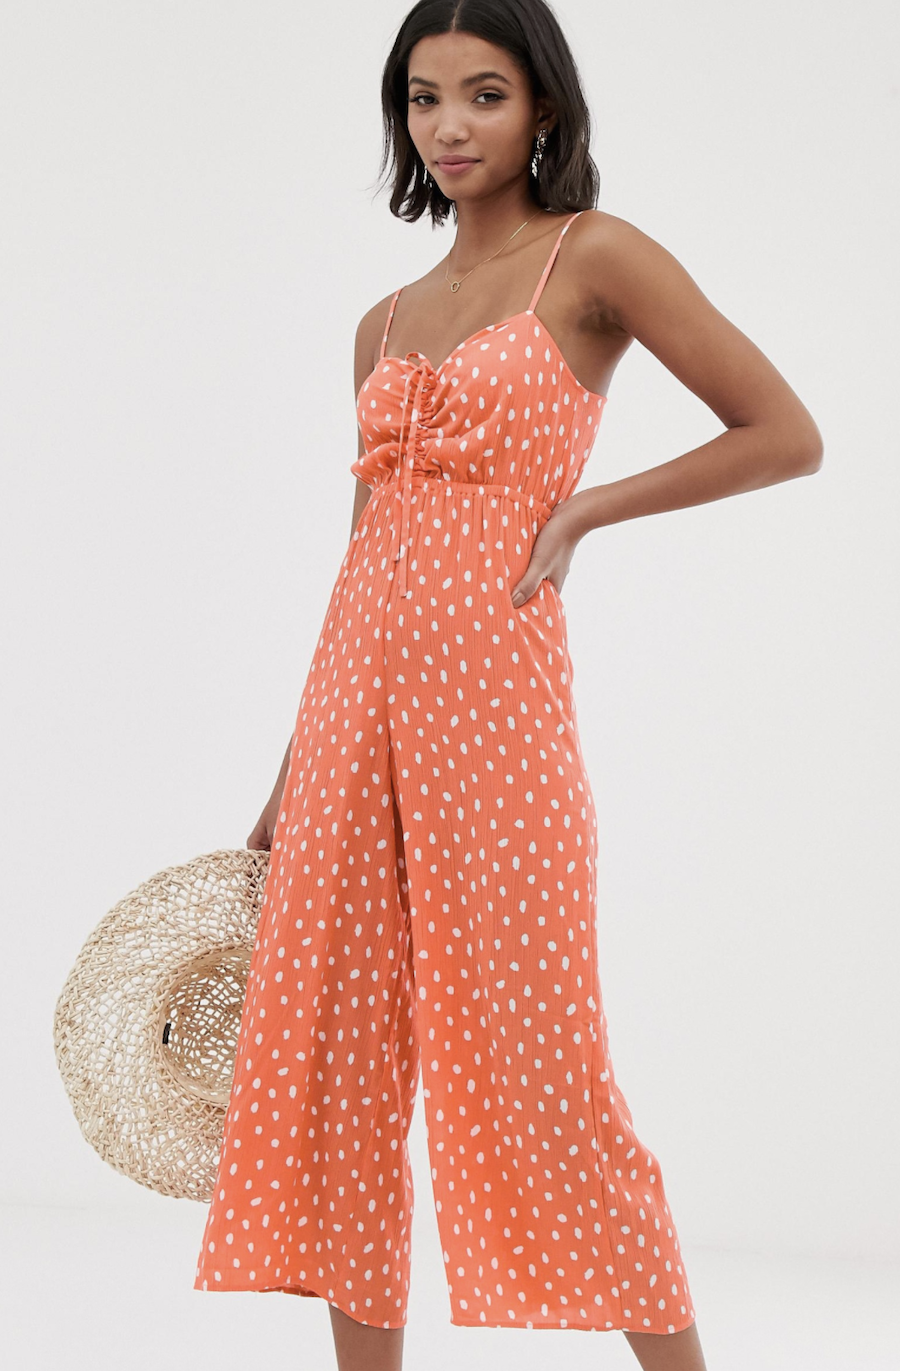 Long strap suit with bra detail with pleats and polka-dot pattern by ASOS DESIGN